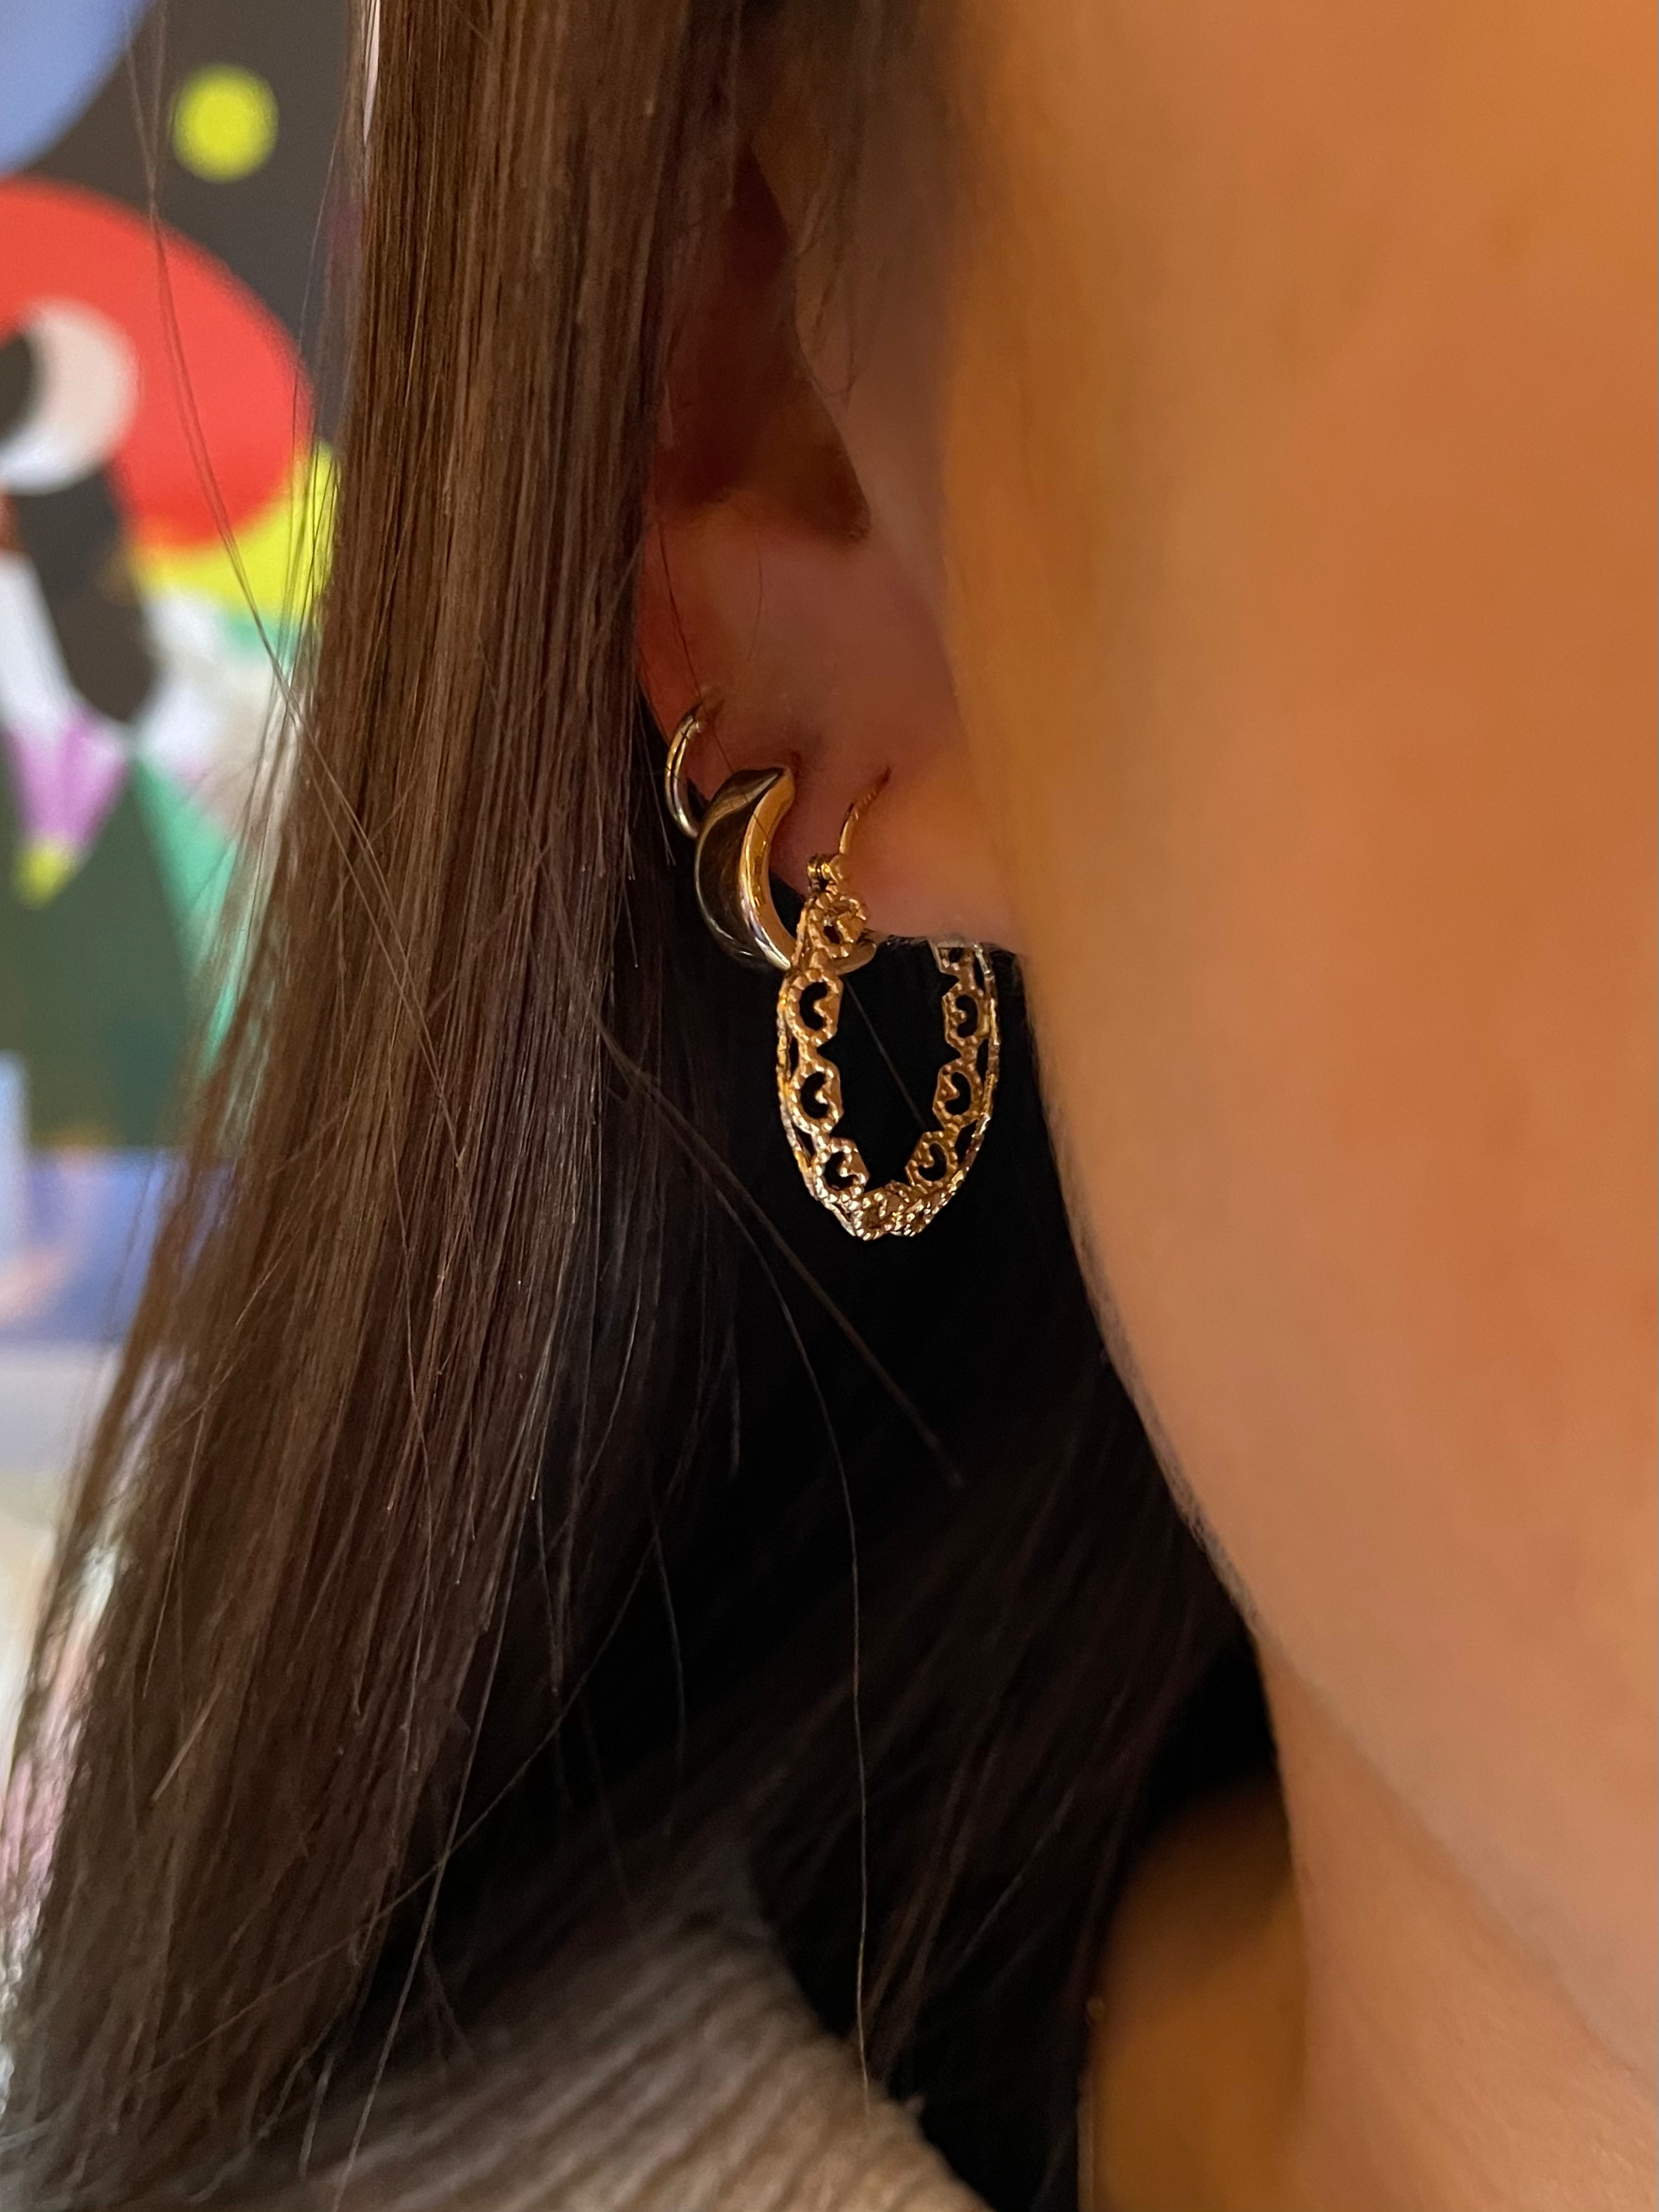 Cut-Out Gold Hoop Earrings - 18mm